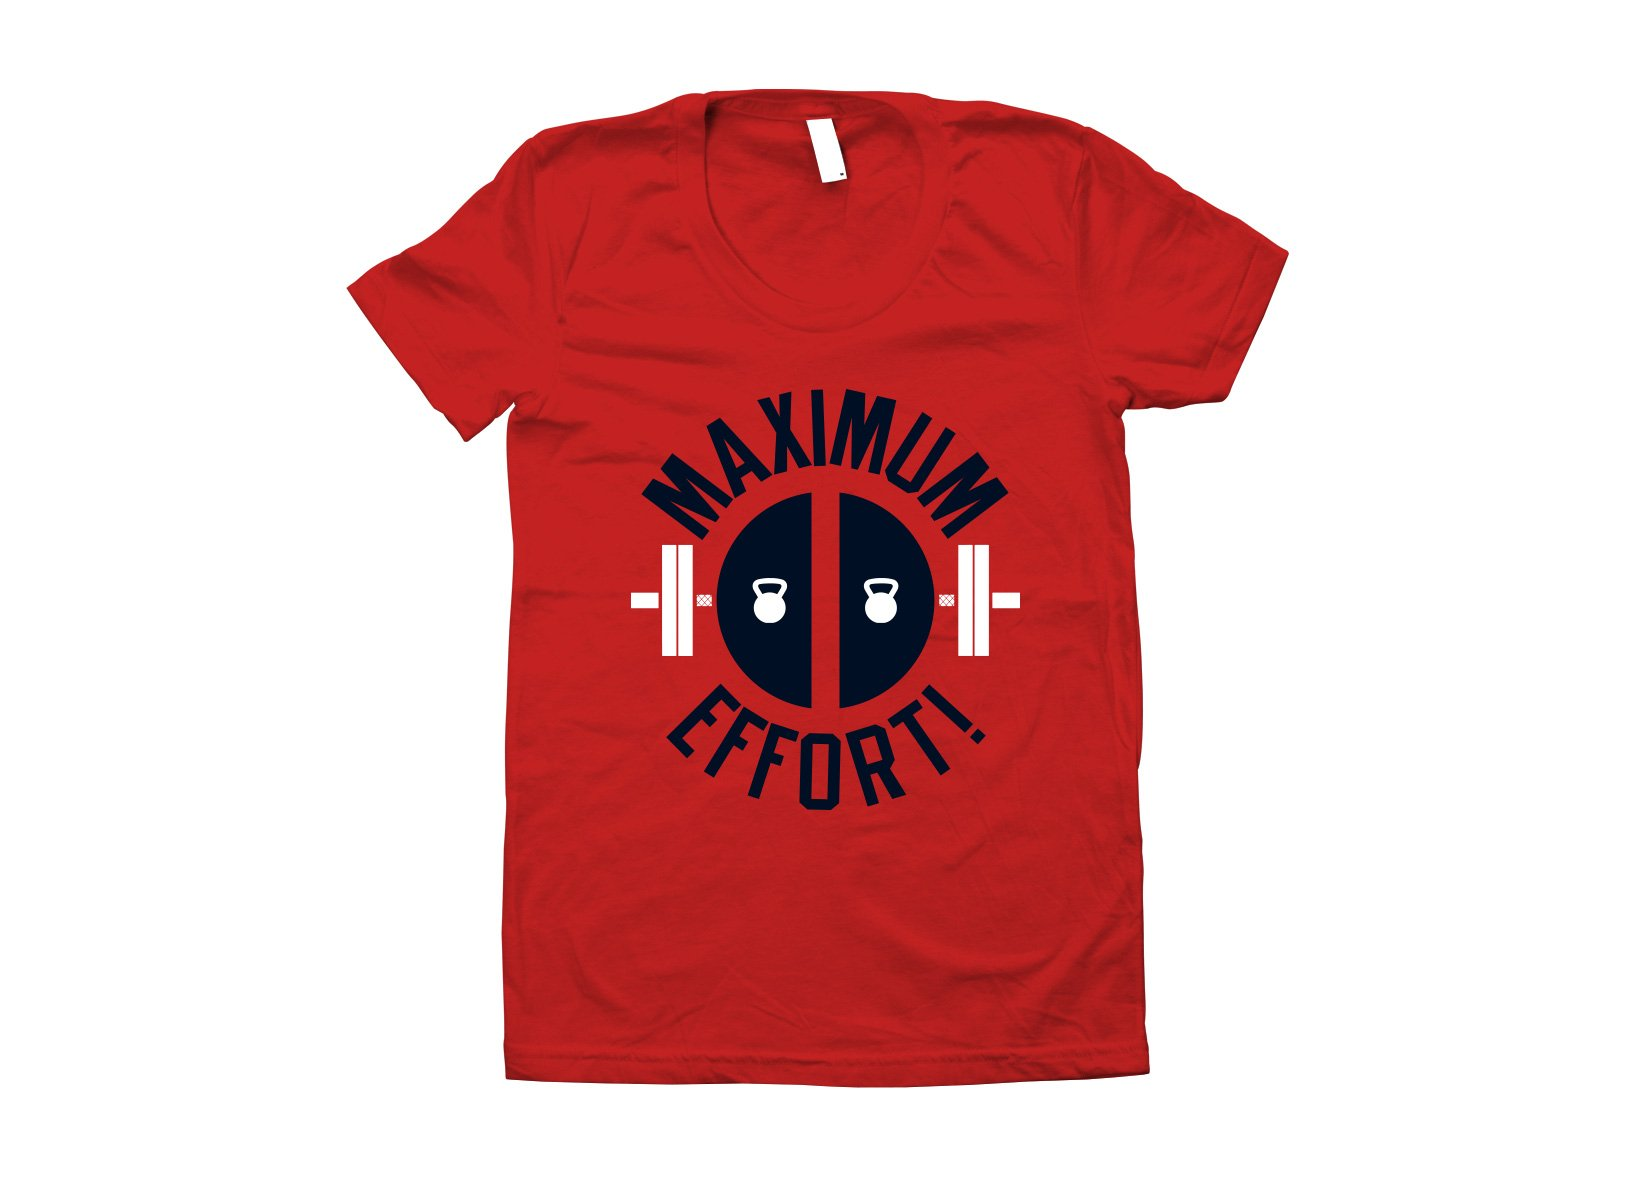 Maximum Effort! on Juniors T-Shirt